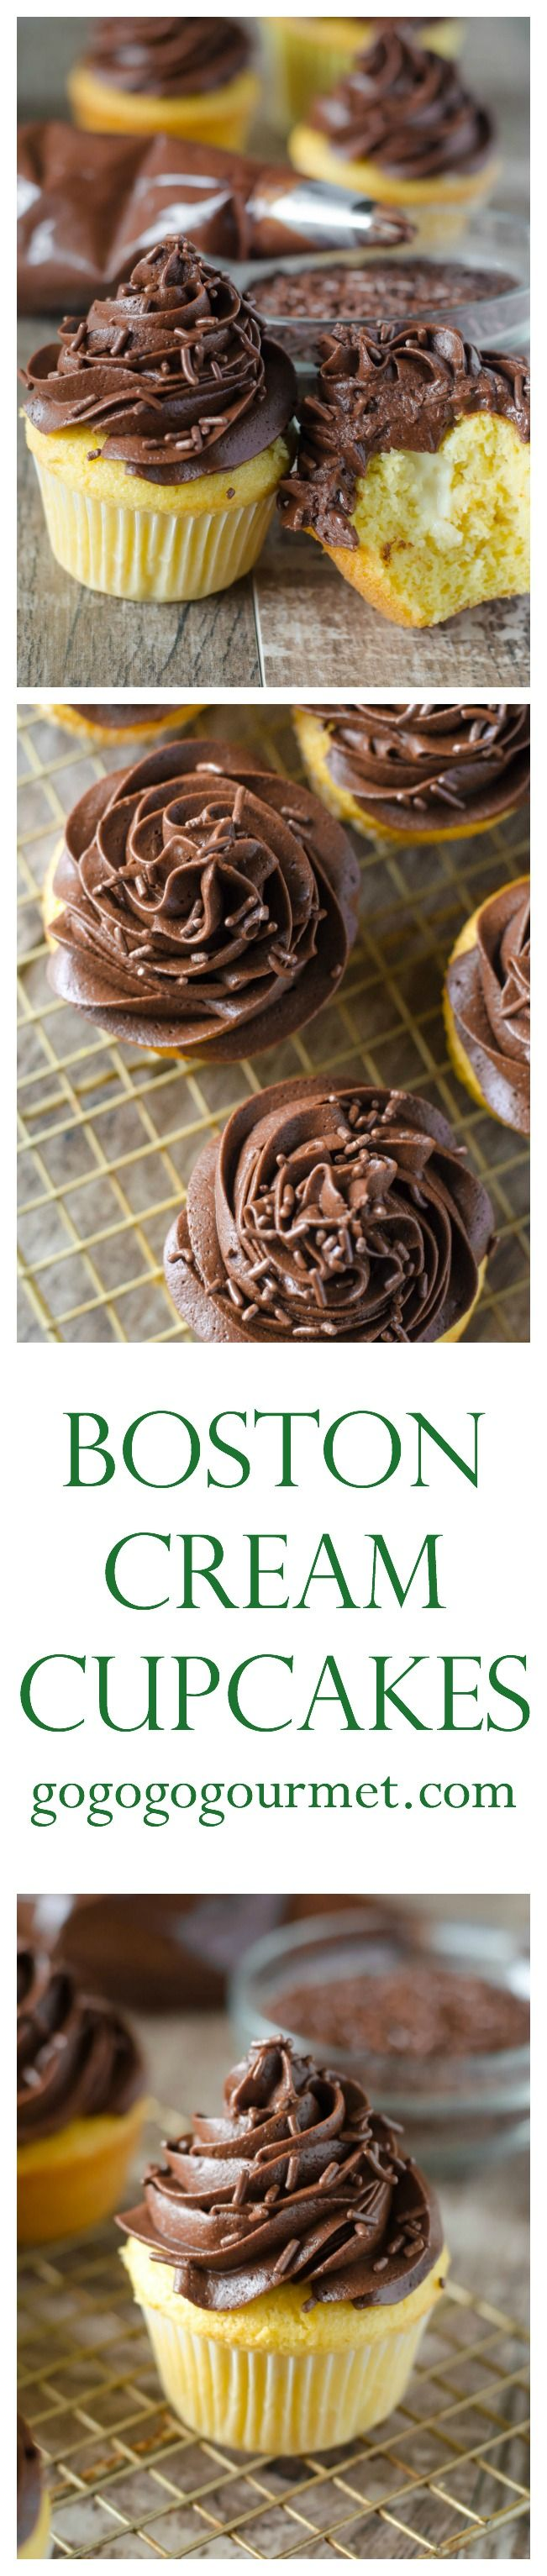 These cupcakes are UNBELIEVABLE! Boxed cake mix is dressed up with a creamy custard filling and the BEST chocolate frosting known to man! Boston Cream Cupcakes | Go Go Go Gourmet @gogogogourmet